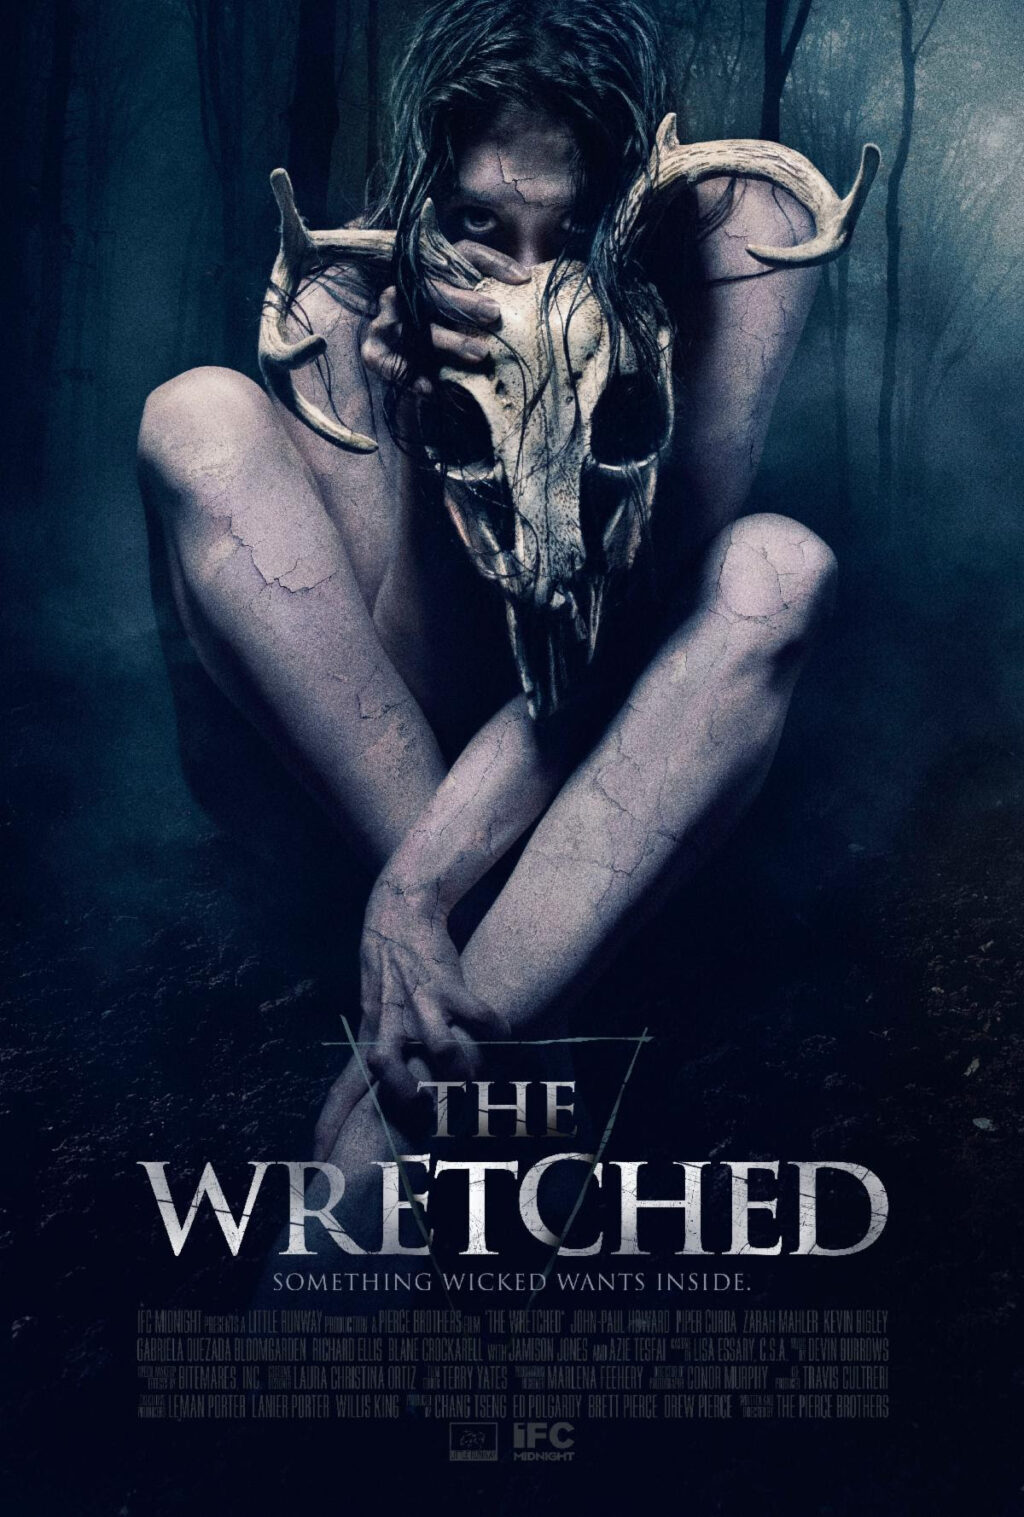 The Wretched Poster 1024x1517 - New Trailer & Poster: IFC Midnight's THE WRETCHED Opens May 1st